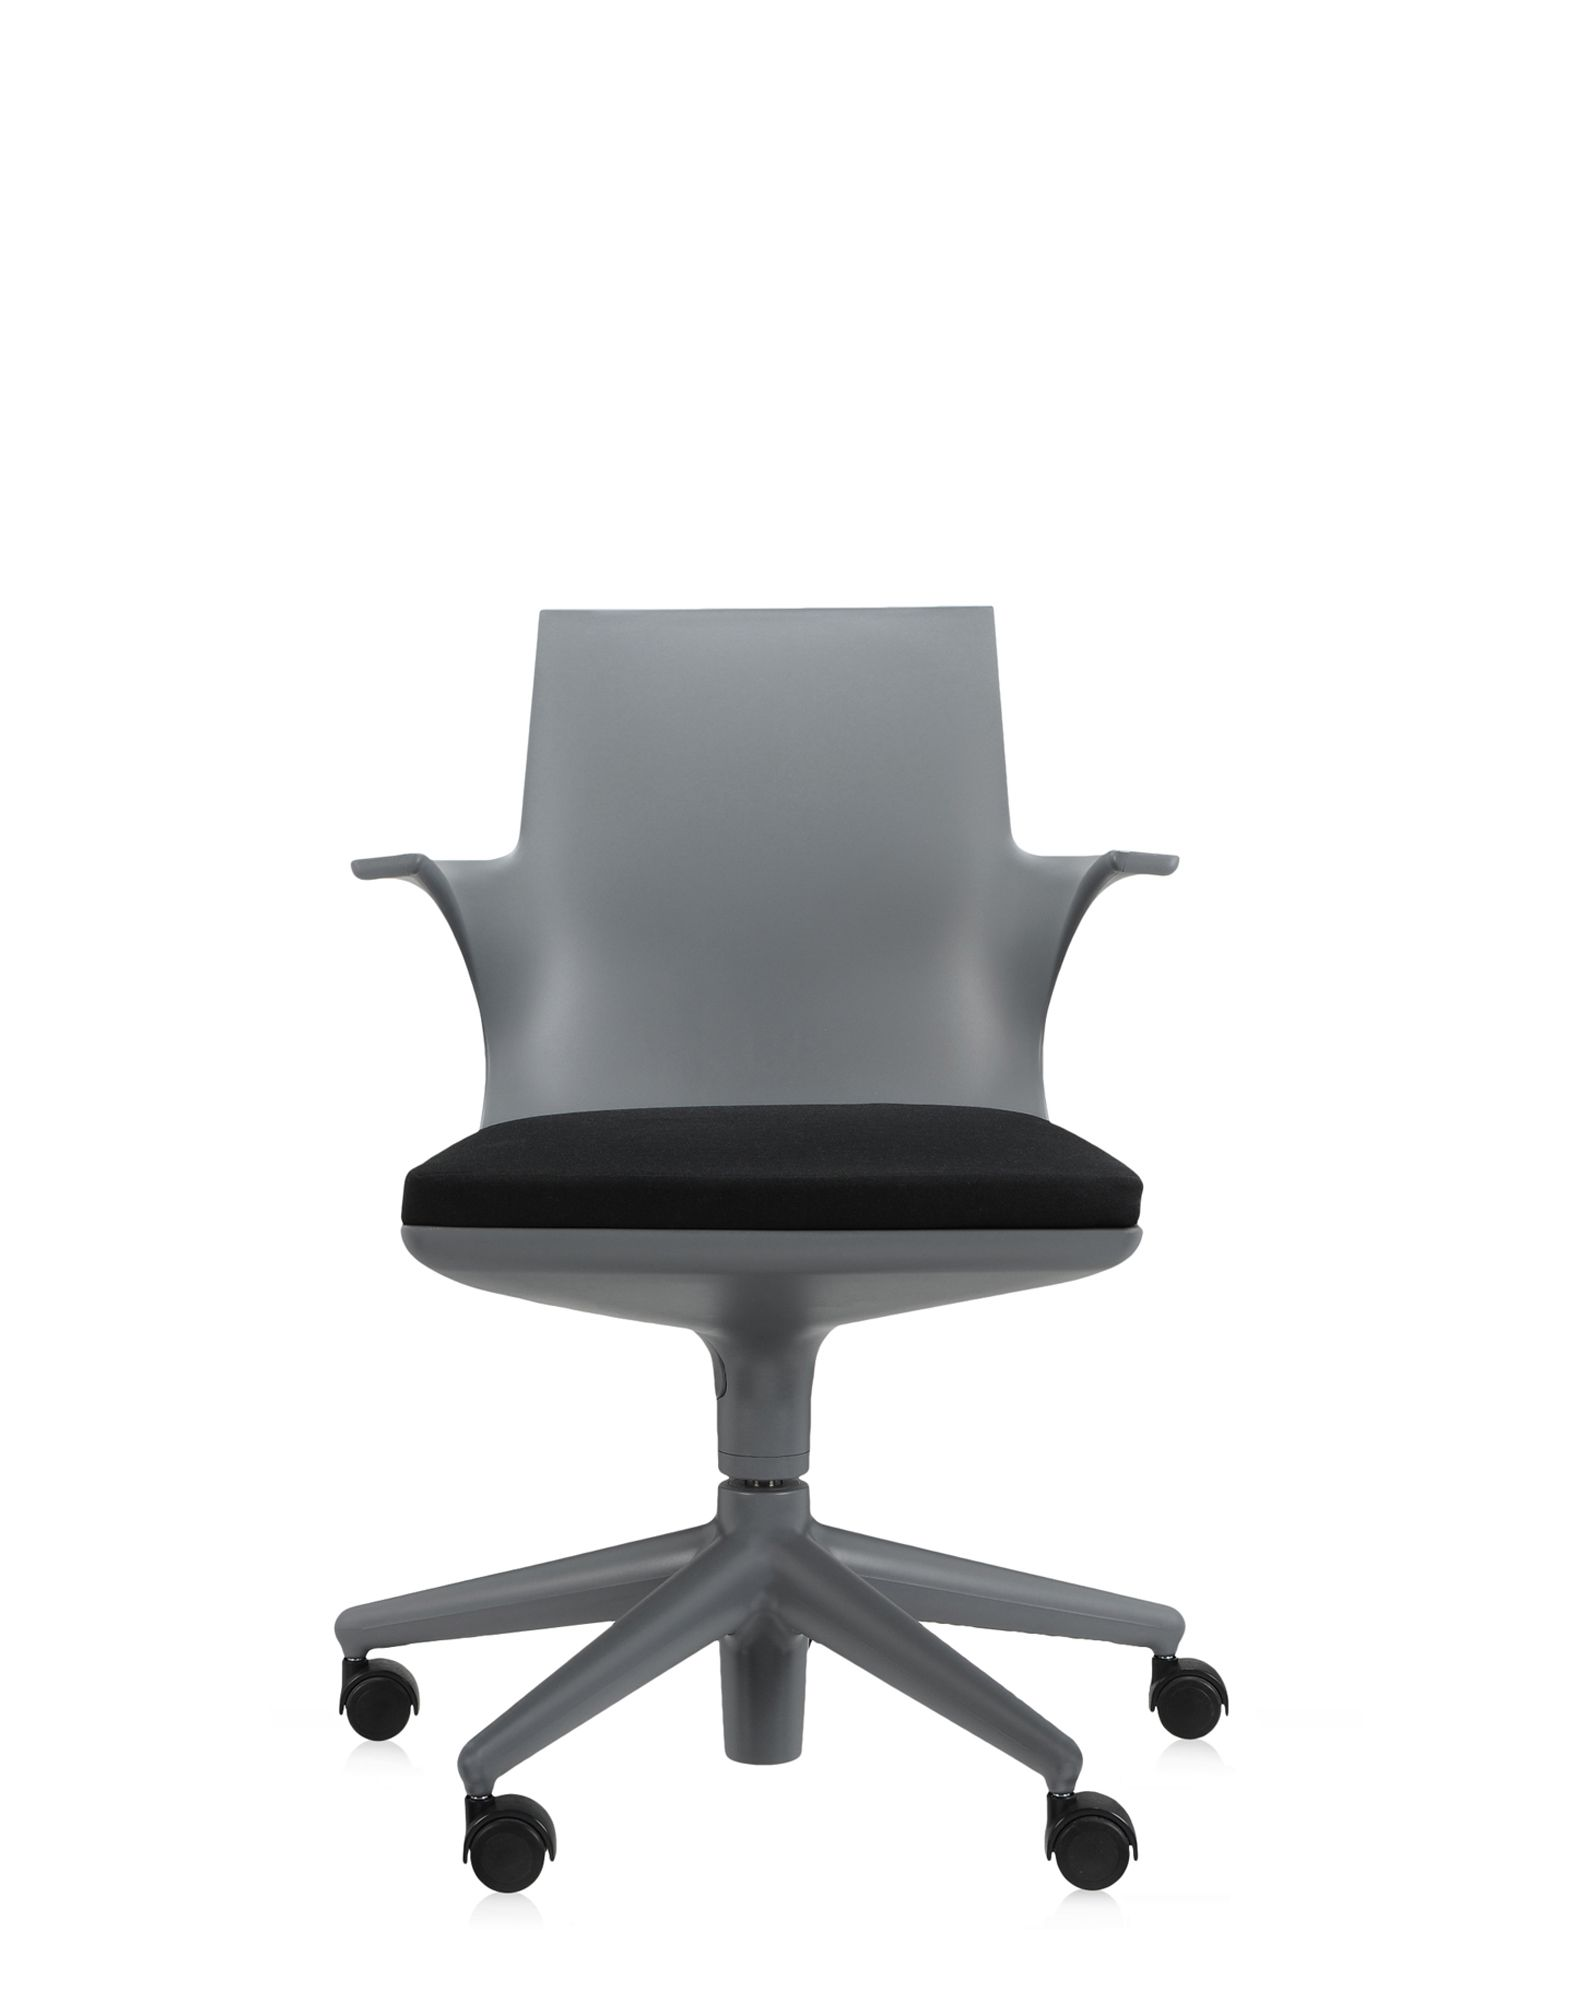 Kartell office chair spoon chair grey black